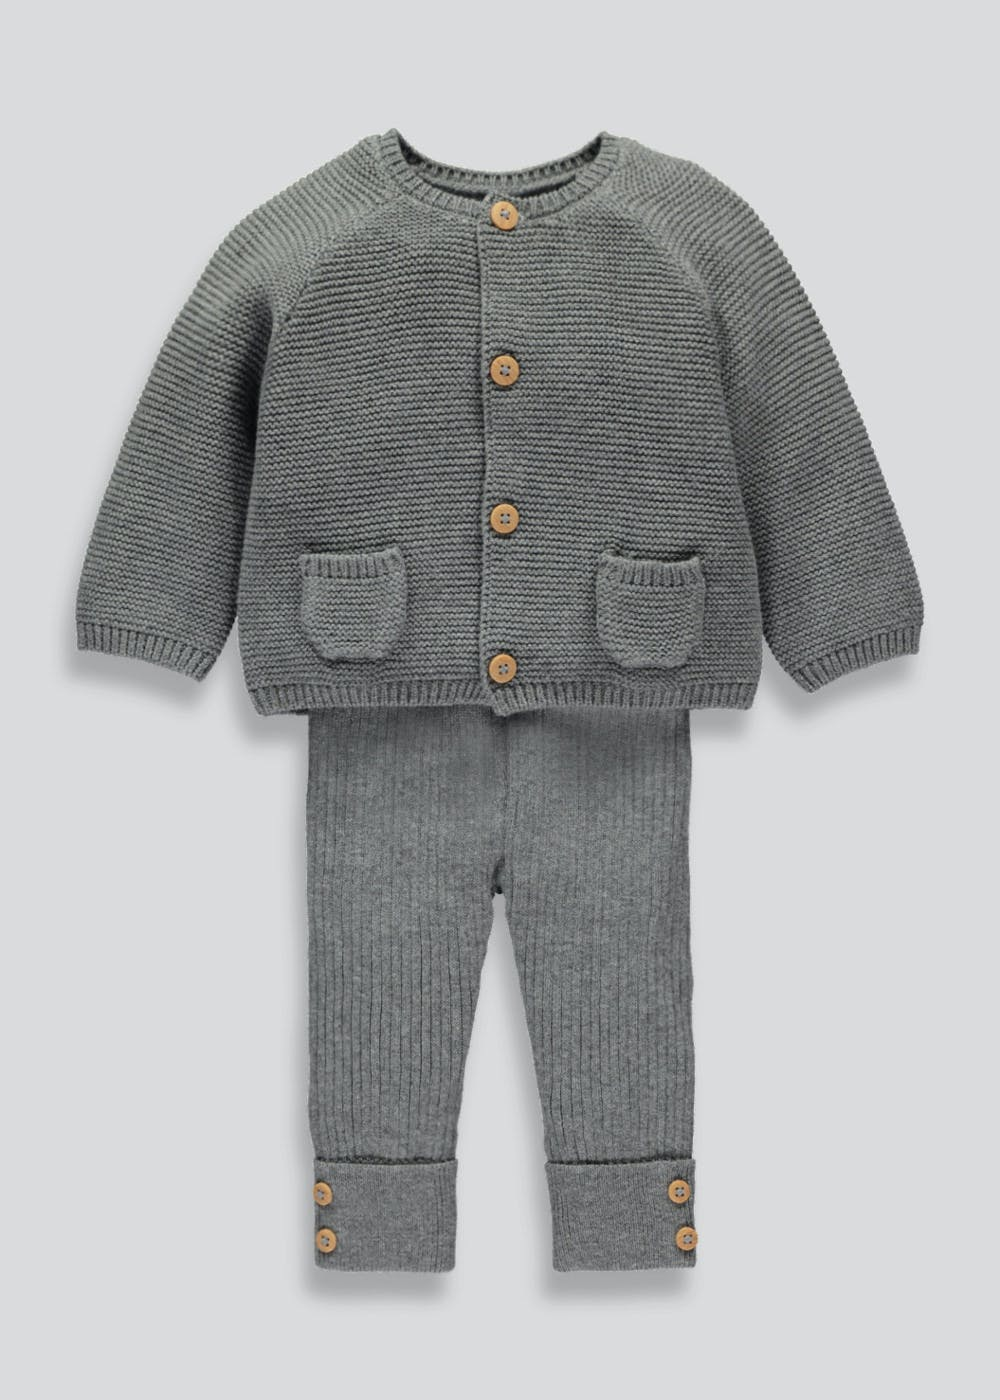 a5fd073d9 Unisex Knitted Cardigan   Leggings Set (Tiny Baby-18mths) – – Matalan